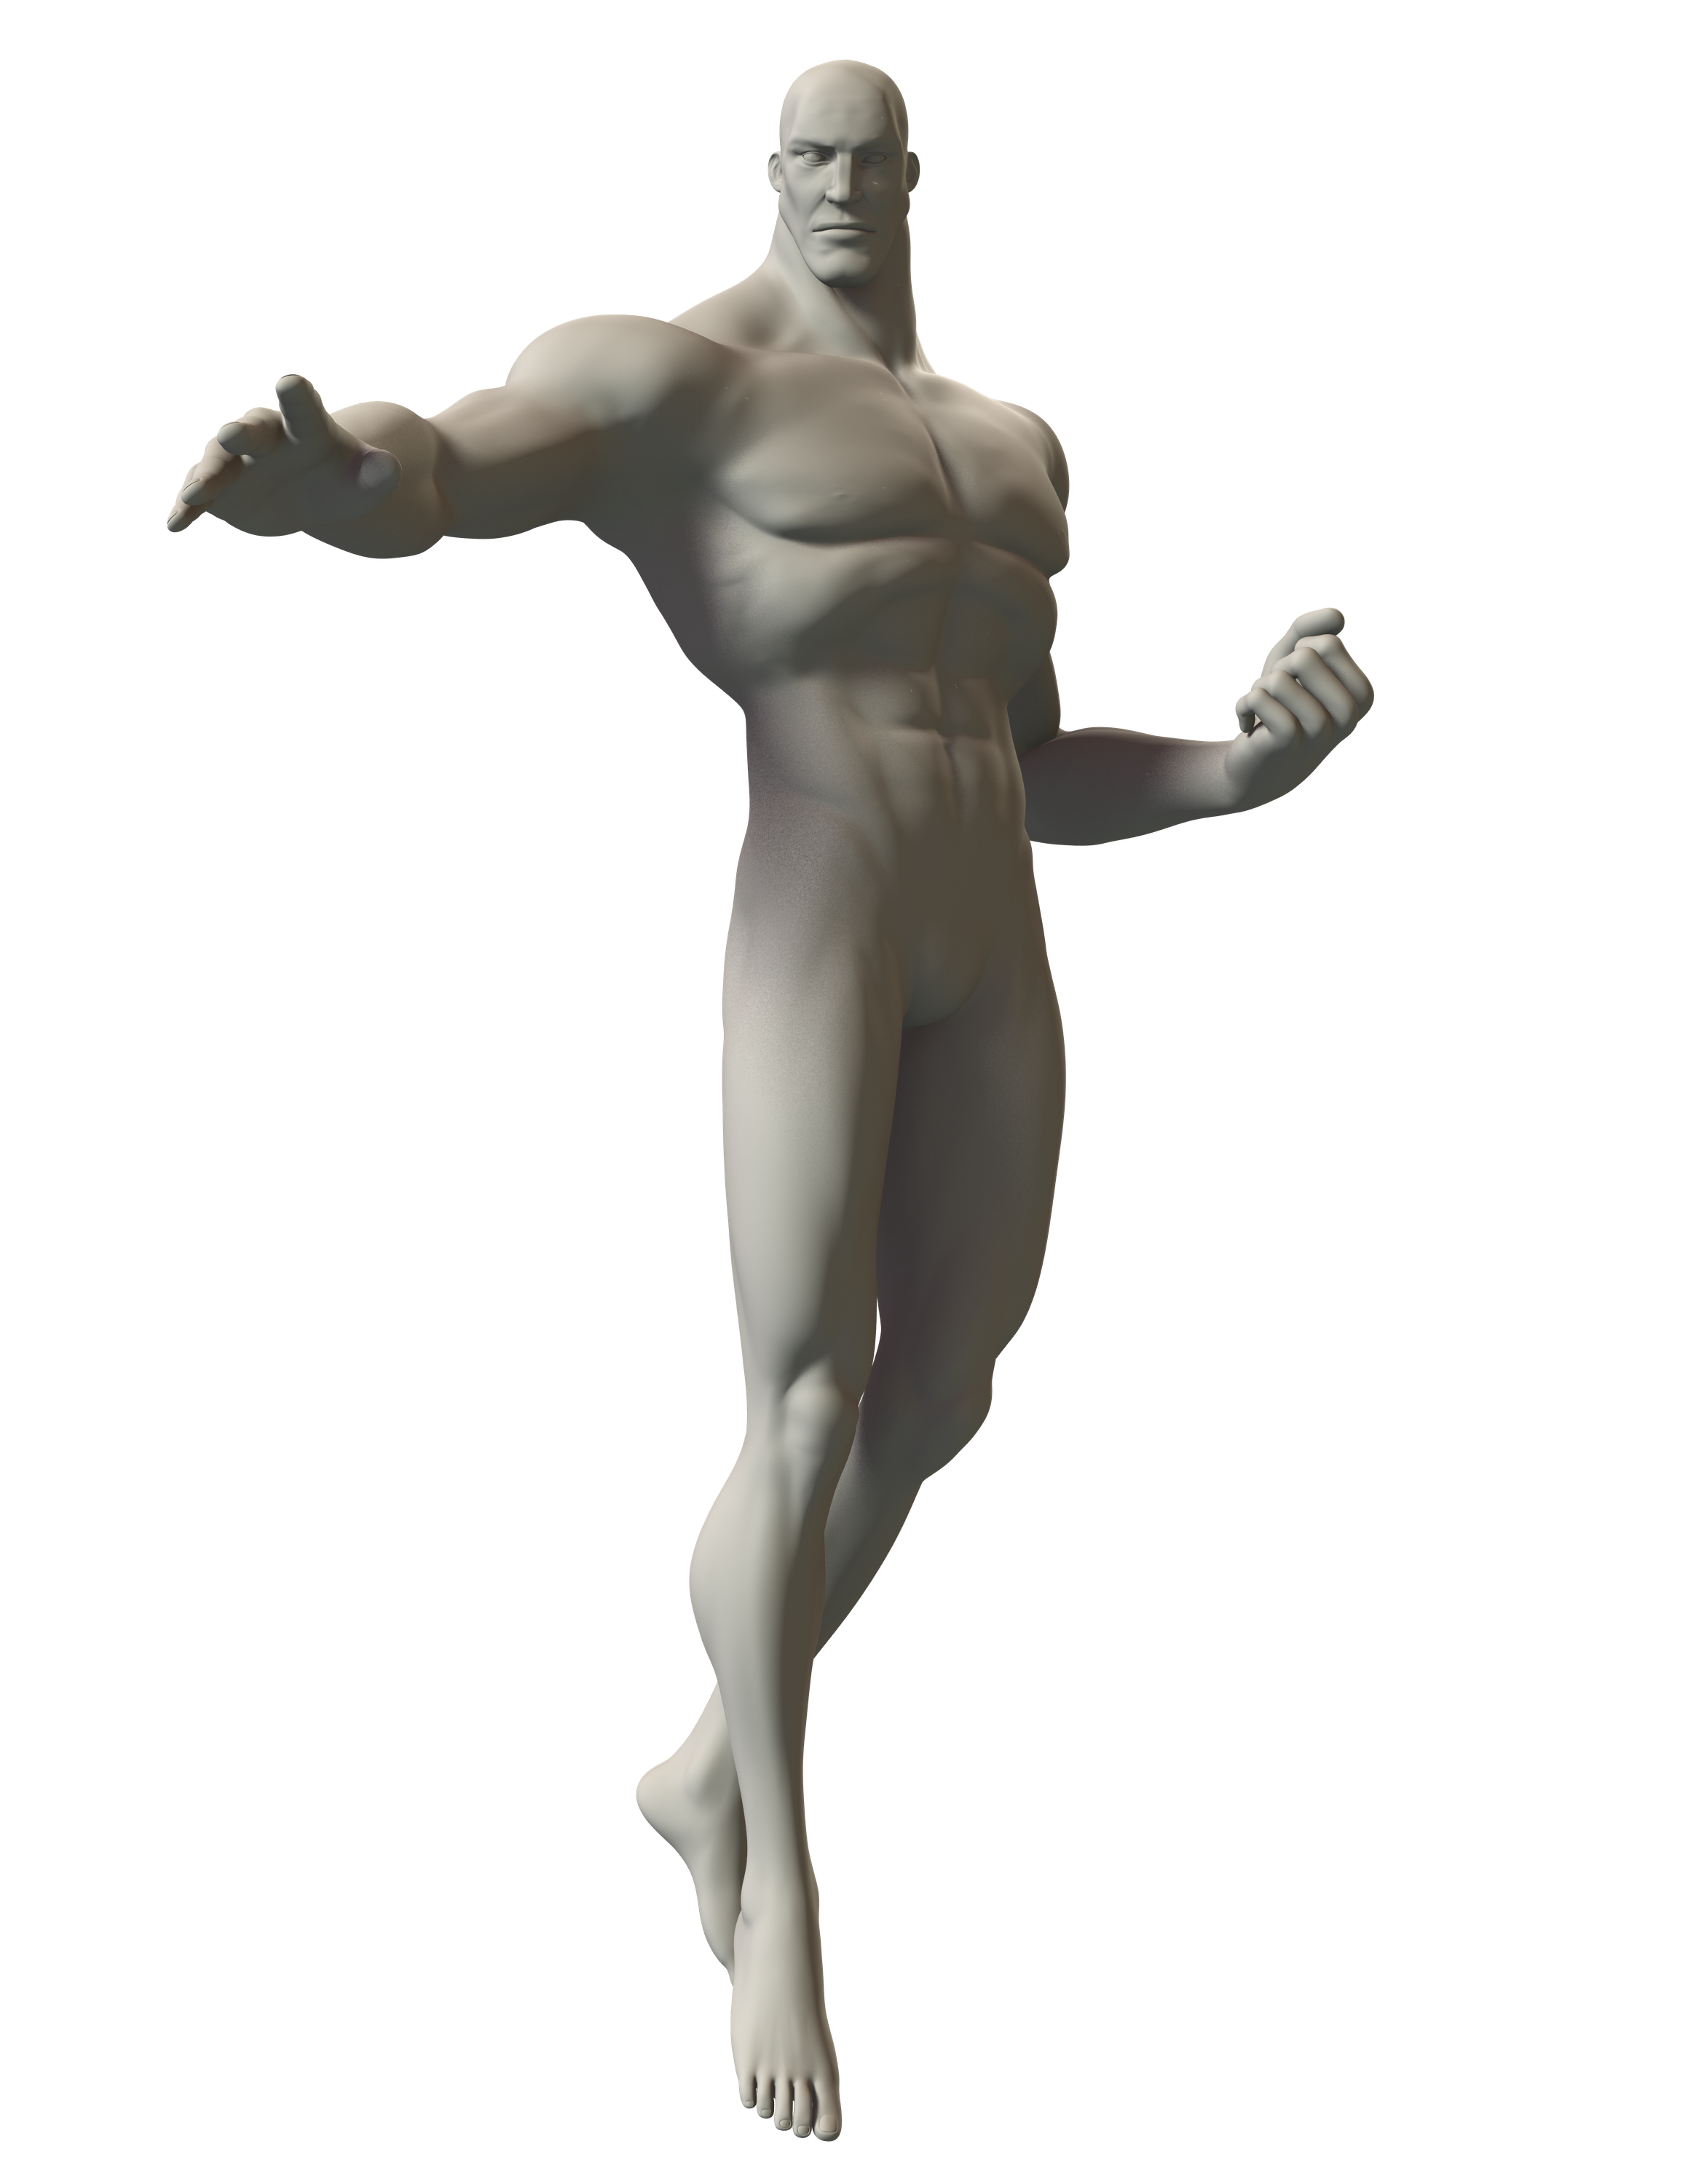 3d Sketch Of A Superhero In A Power Flying Pose Image Is Copyright Free Poses Action Poses Pose Reference